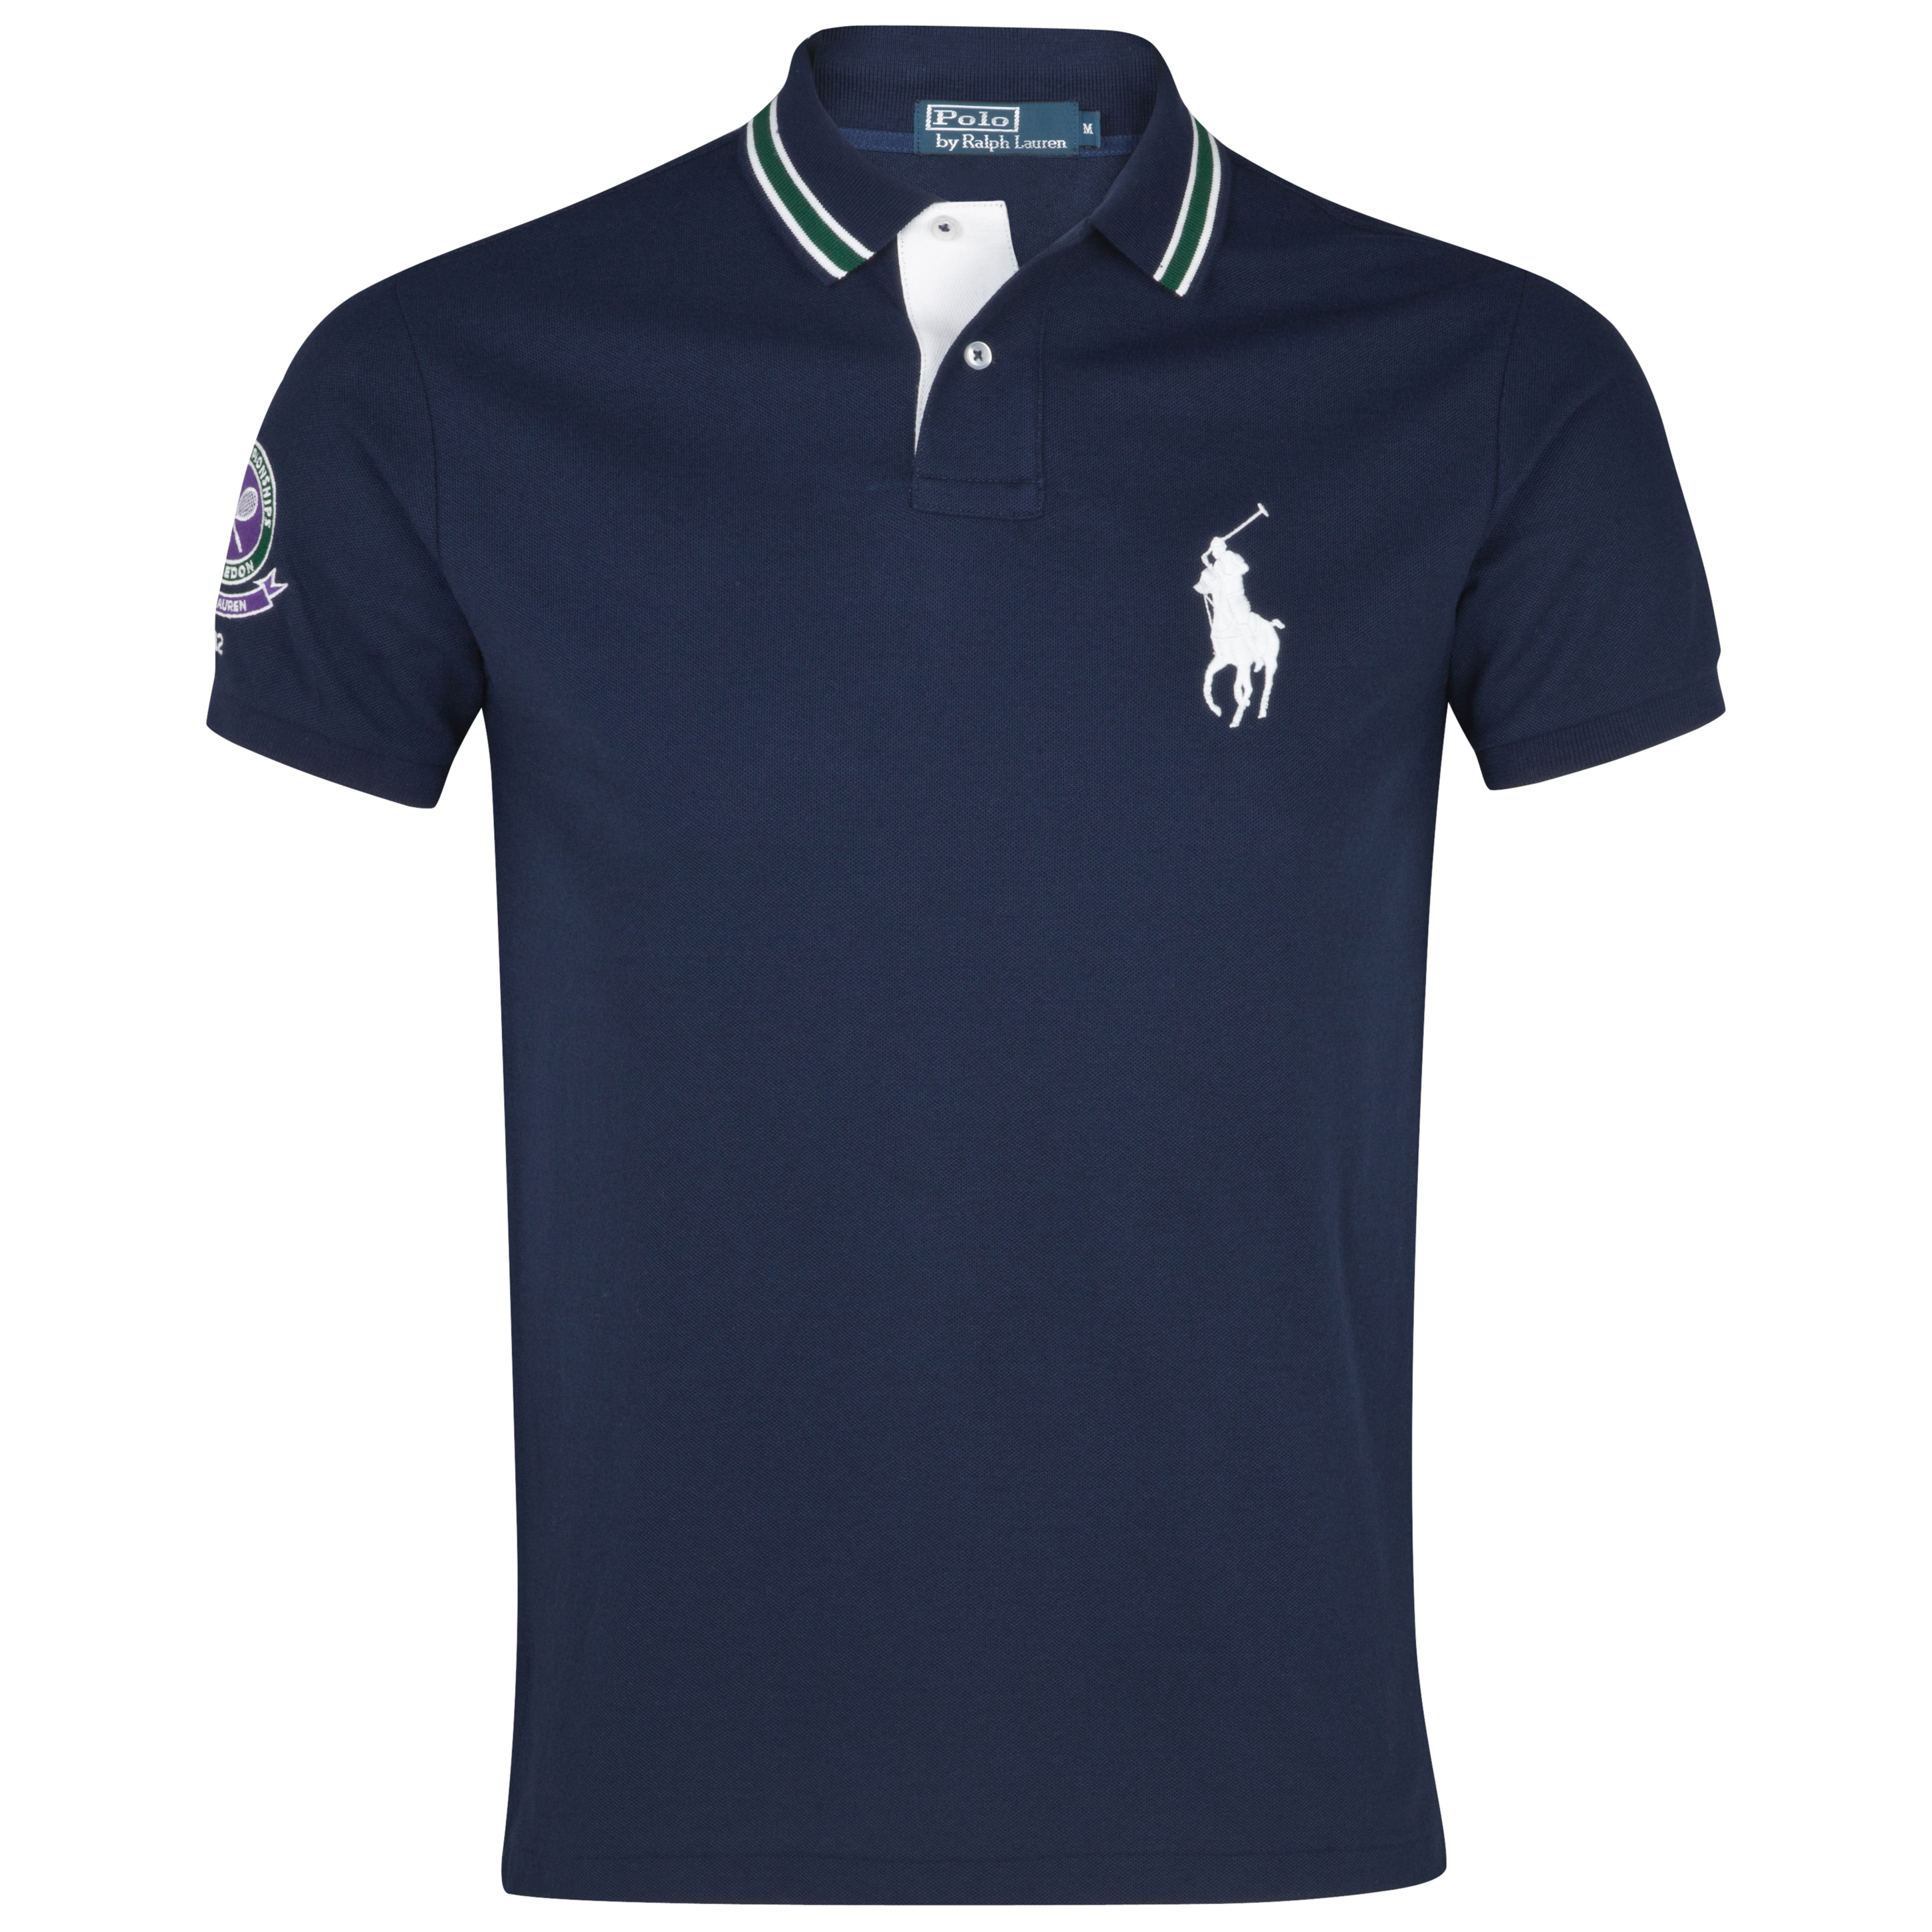 Polo Ralph Lauren Polo Big PP Mesh Polo - Navy - Older Boys